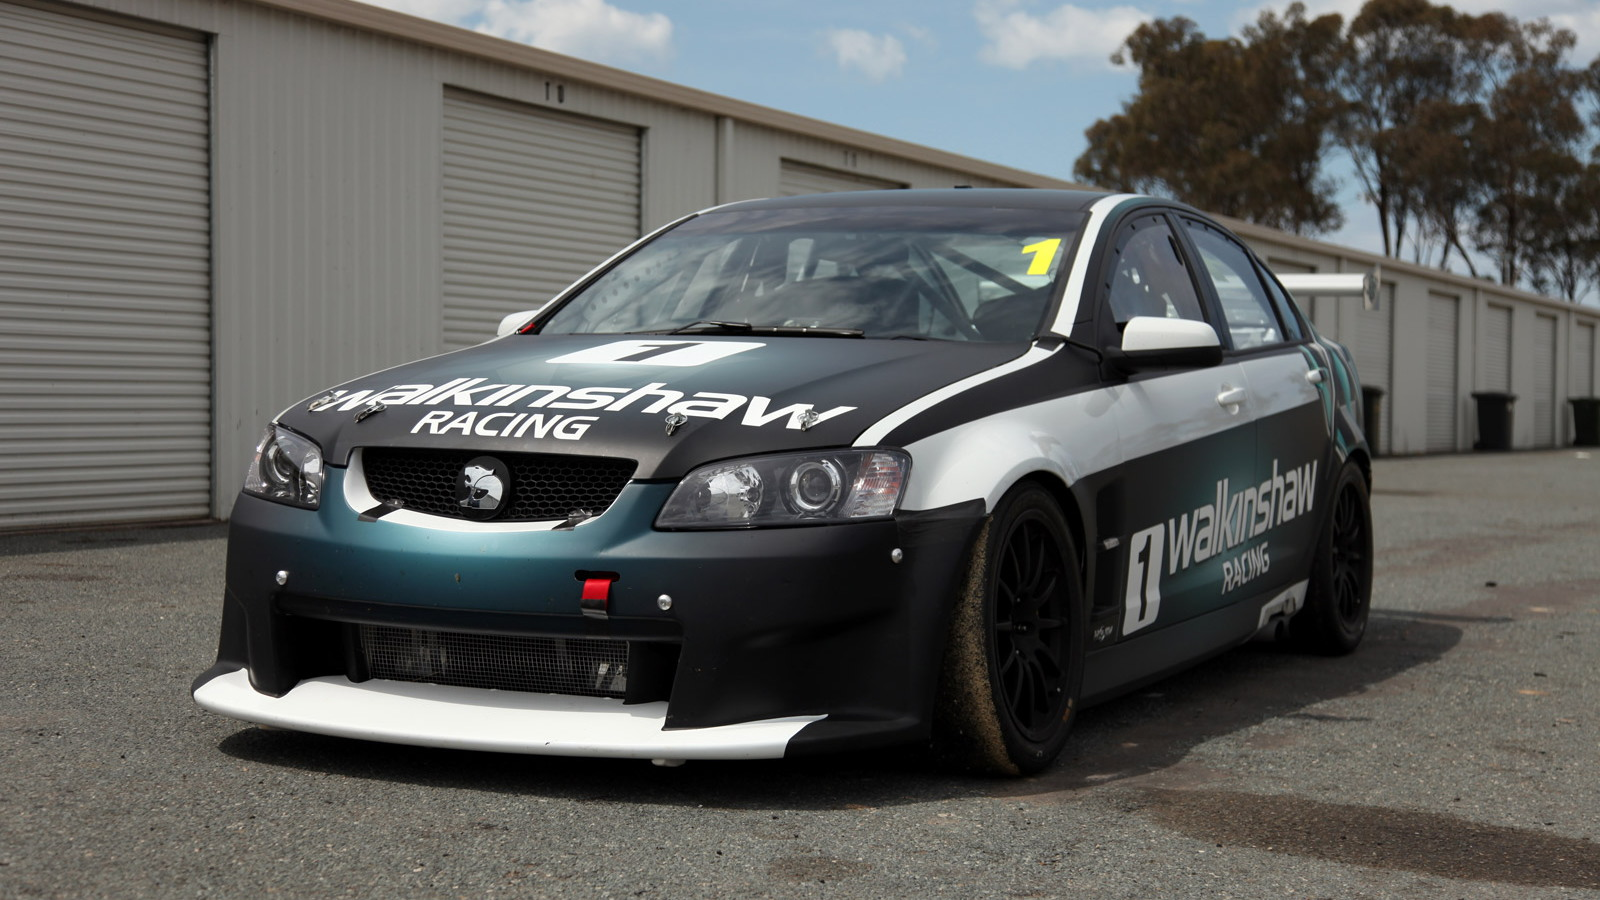 HSV ClubSport R8 race car based on the Holden Commodore